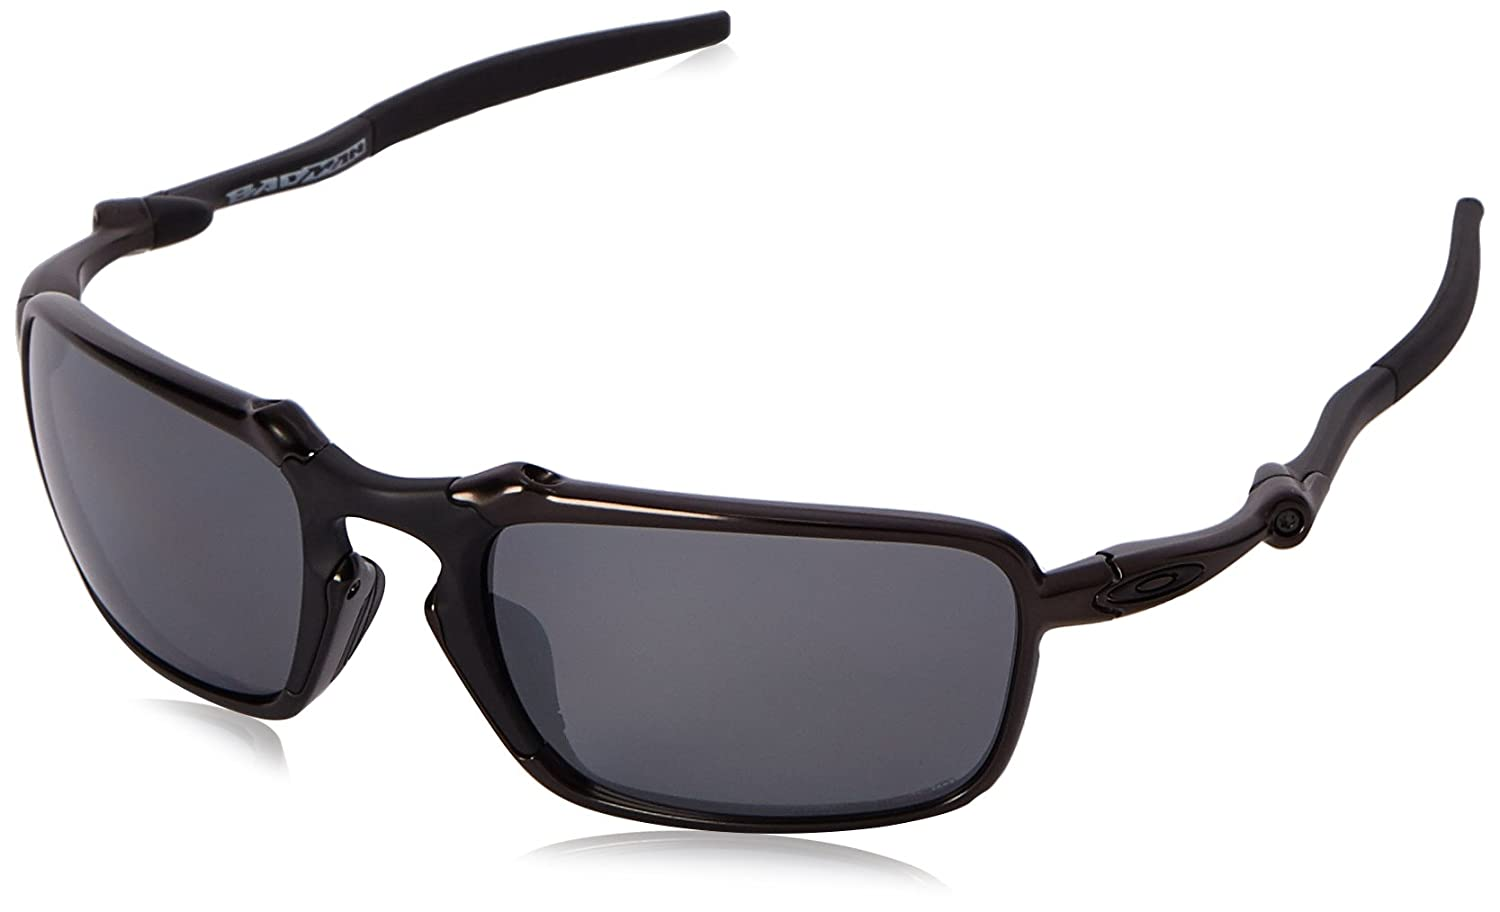 Oakley Badman OO6020 C60, Nero (Dark Carbon), One Size